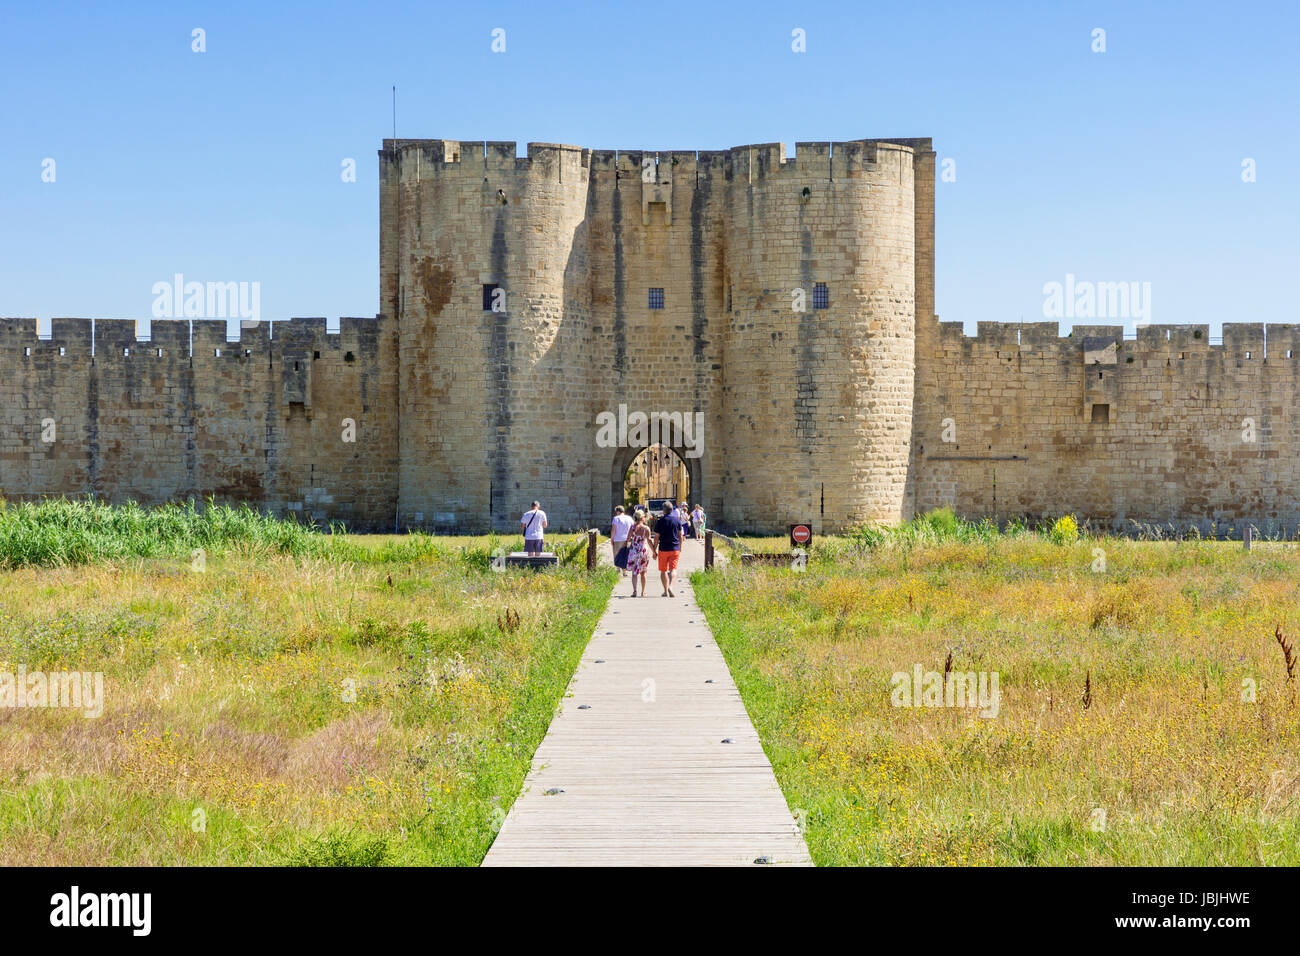 Tourists entering the old town through one of the main medieval gateways of Aigues Mortes, Nimes, Gard, Occitanie, - Stock Image